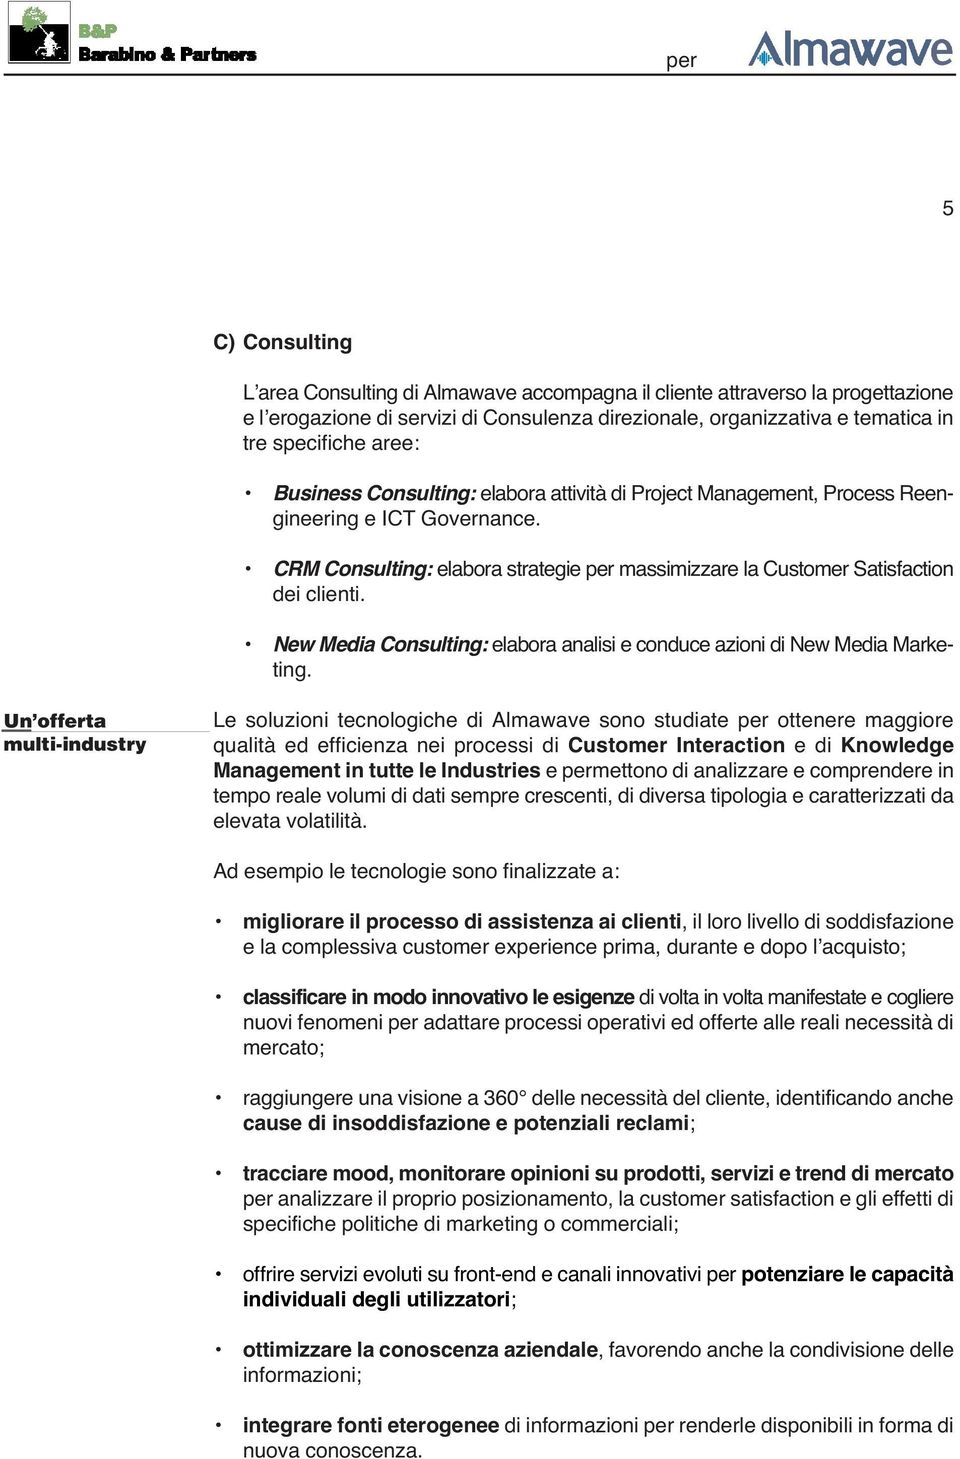 New Media Consulting: elabora analisi e conduce azioni di New Media Marketing.